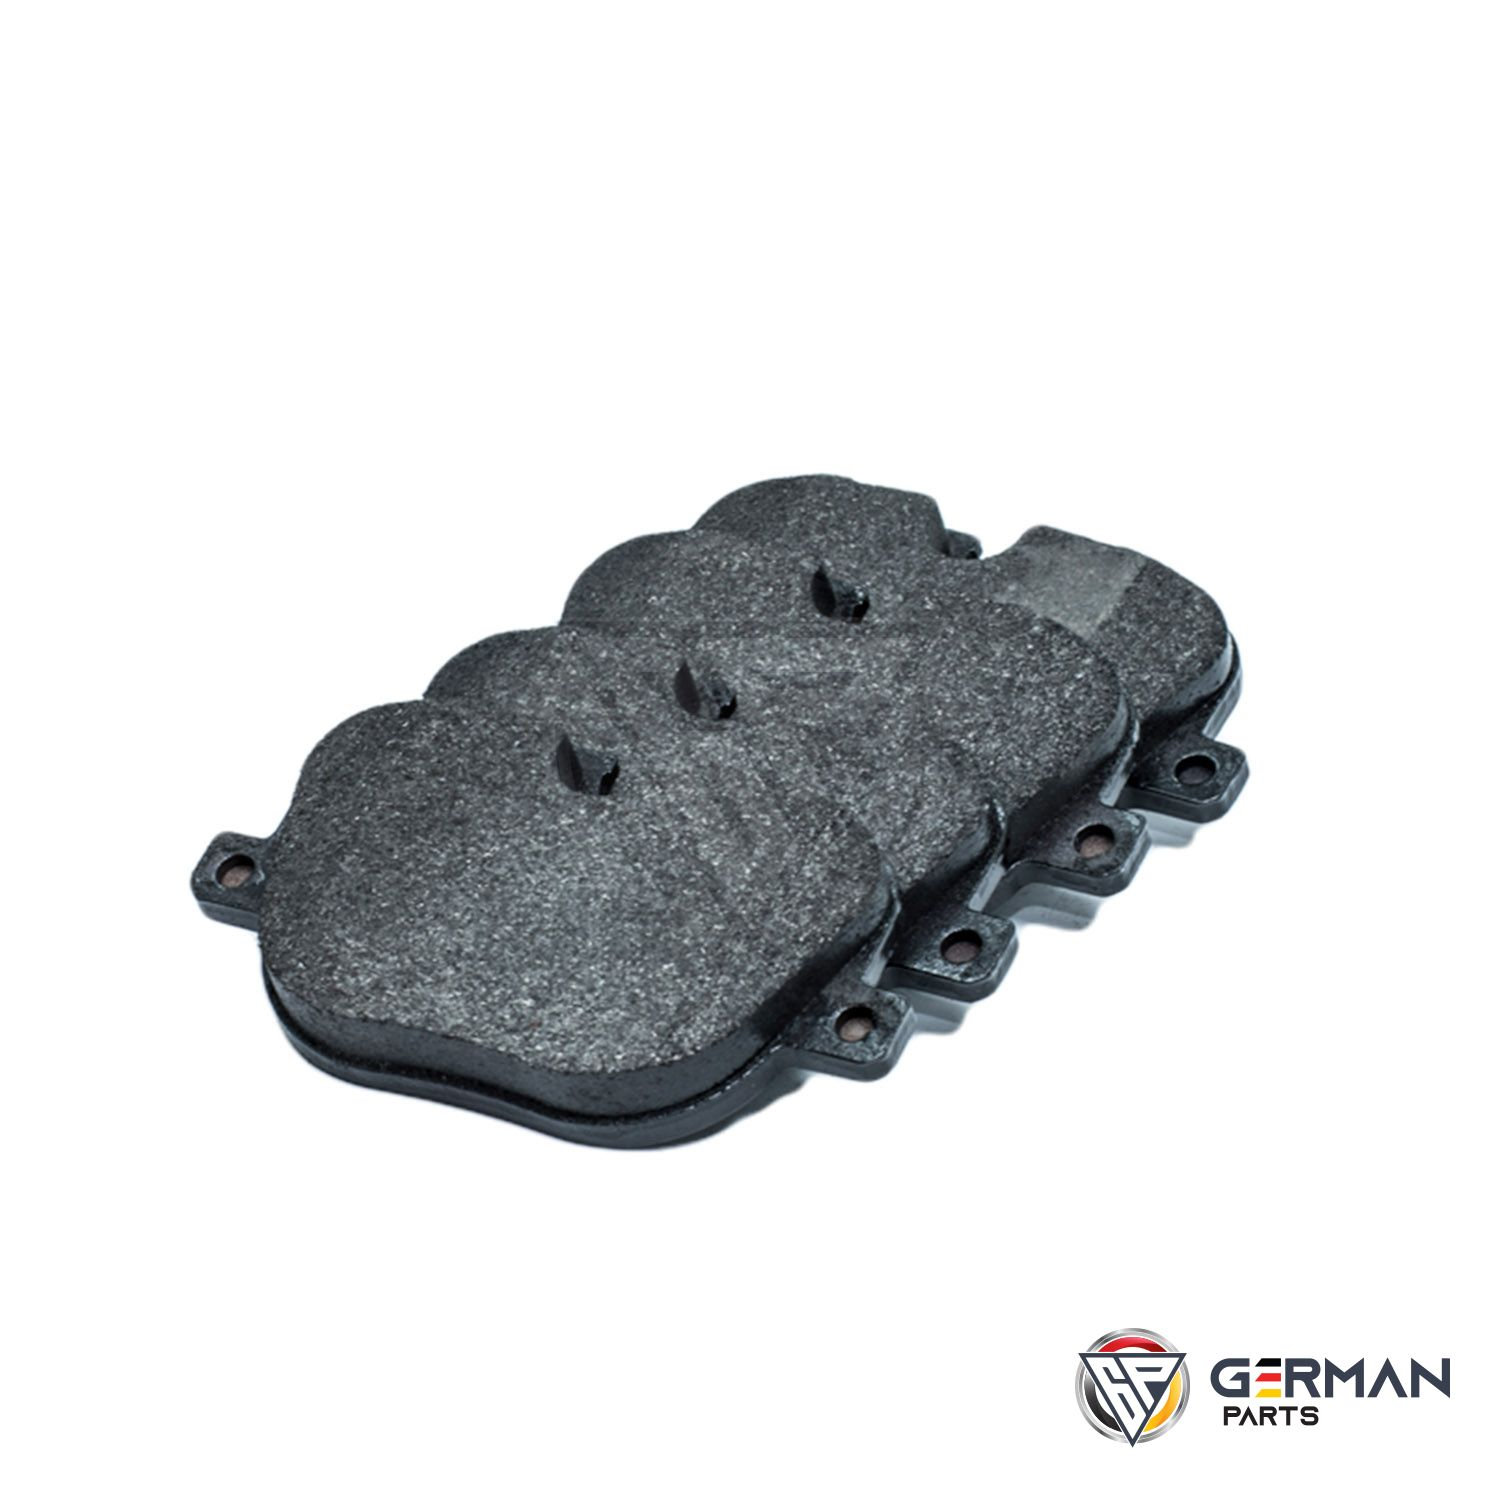 Buy Ferodo Rear Brake Pad Set LR025739 - German Parts